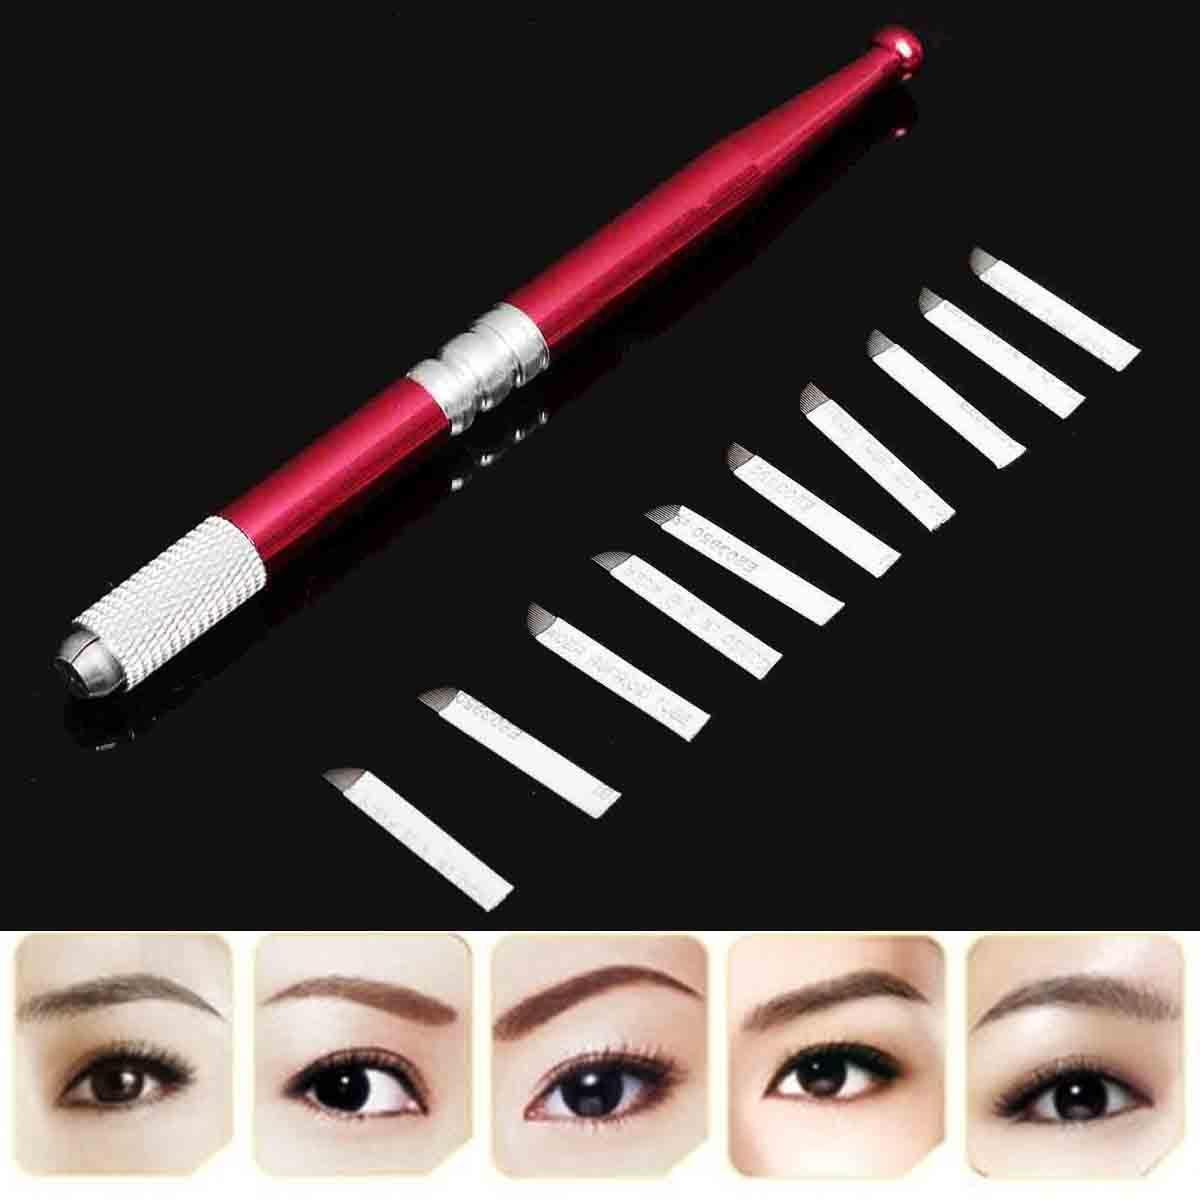 Wholesale-1pcs Embroidery Eyebrow Tattoo Manual Pen + 10pcs 7 Needle Eyebrow Microblading New Professional Tattoo Eyebrow Supply Kit